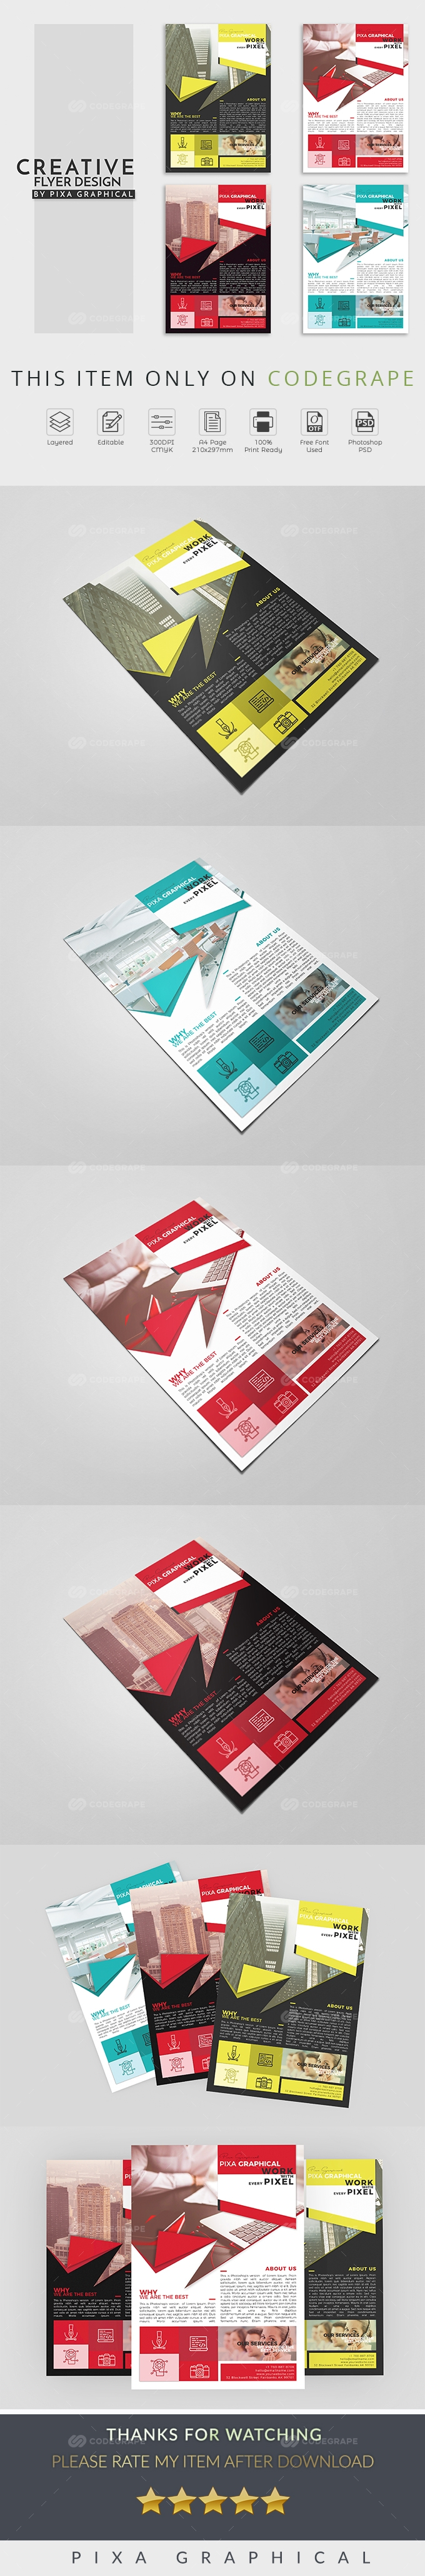 Creative Flyer Design Template